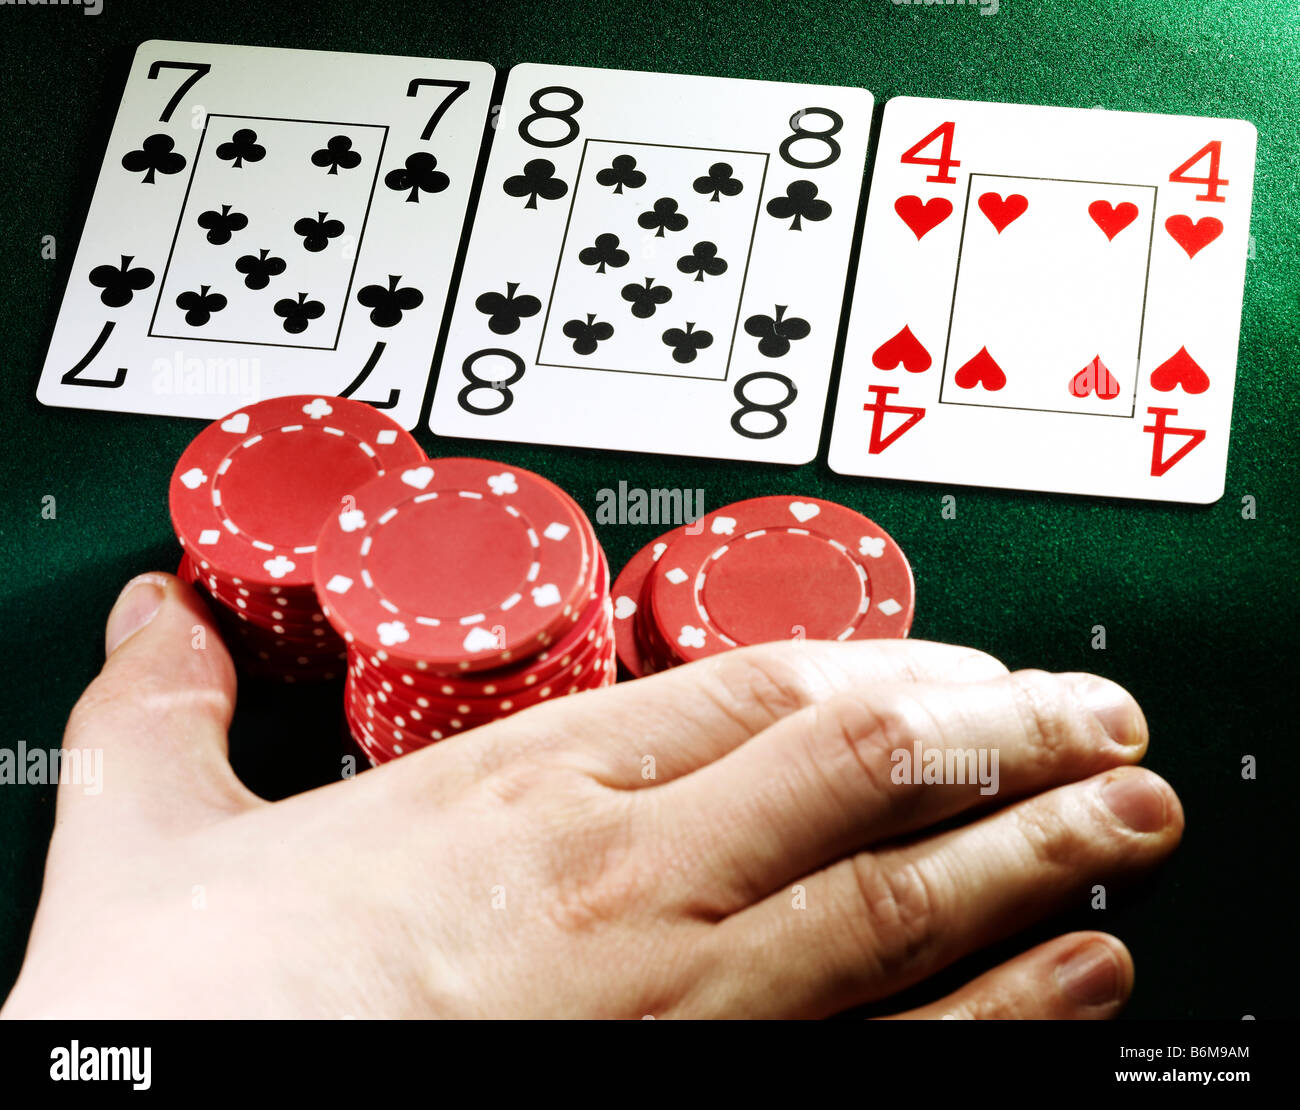 poker hand - Stock Image